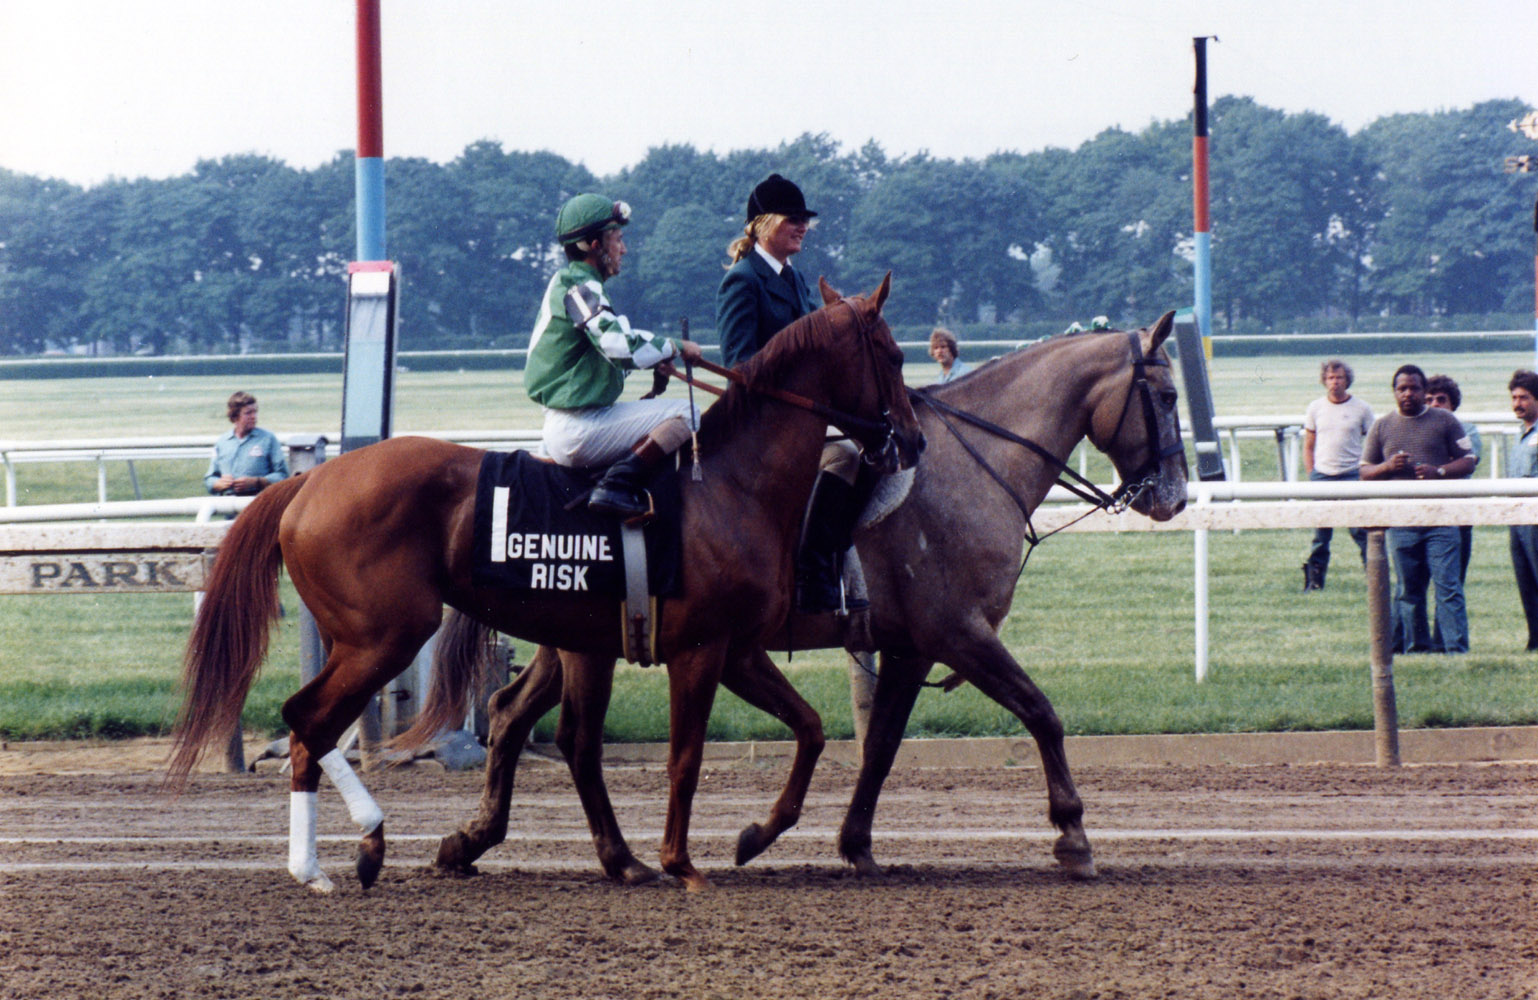 Genuine Risk (Jacinto Vasquez up) in the post parade for the 1980 Belmont Stakes. Like the Preakness, she finishes in second place (Barbara D. Livingston/Museum Collection)